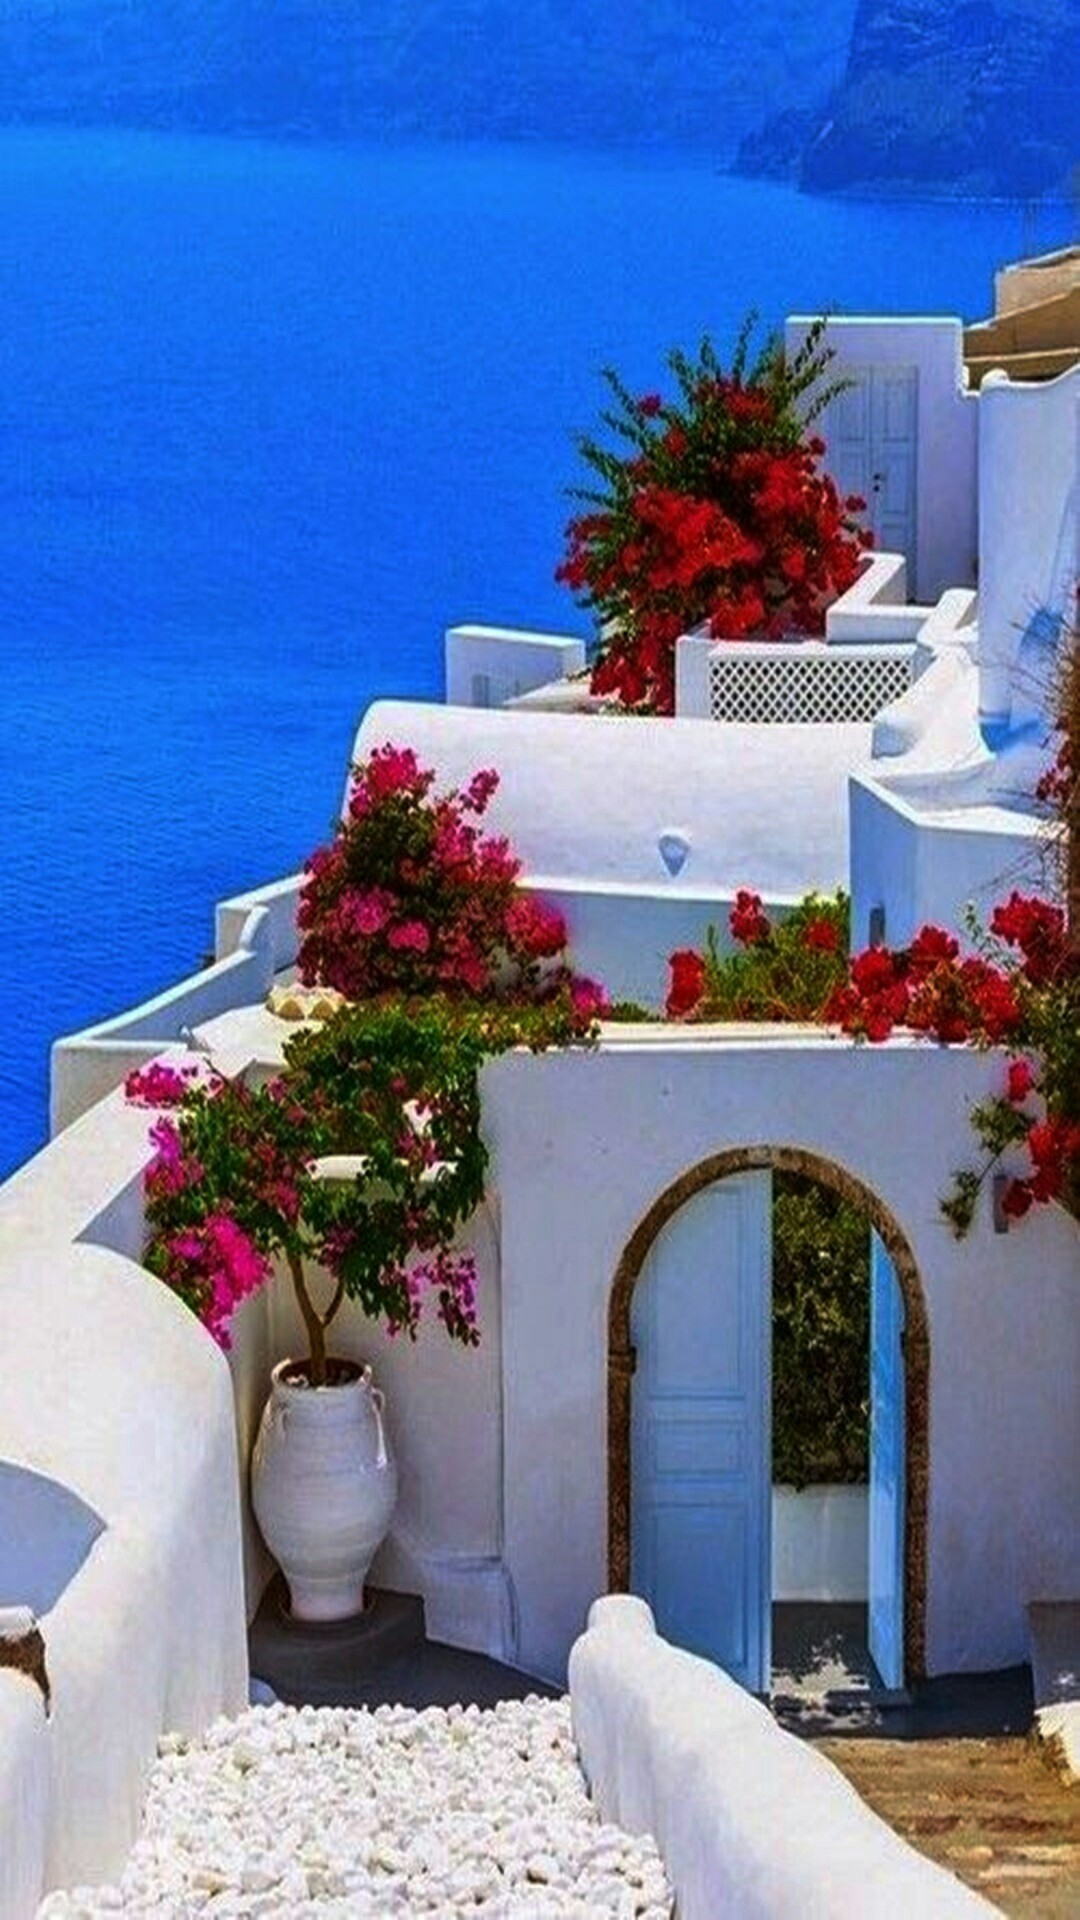 Greece lock screen wallpaper